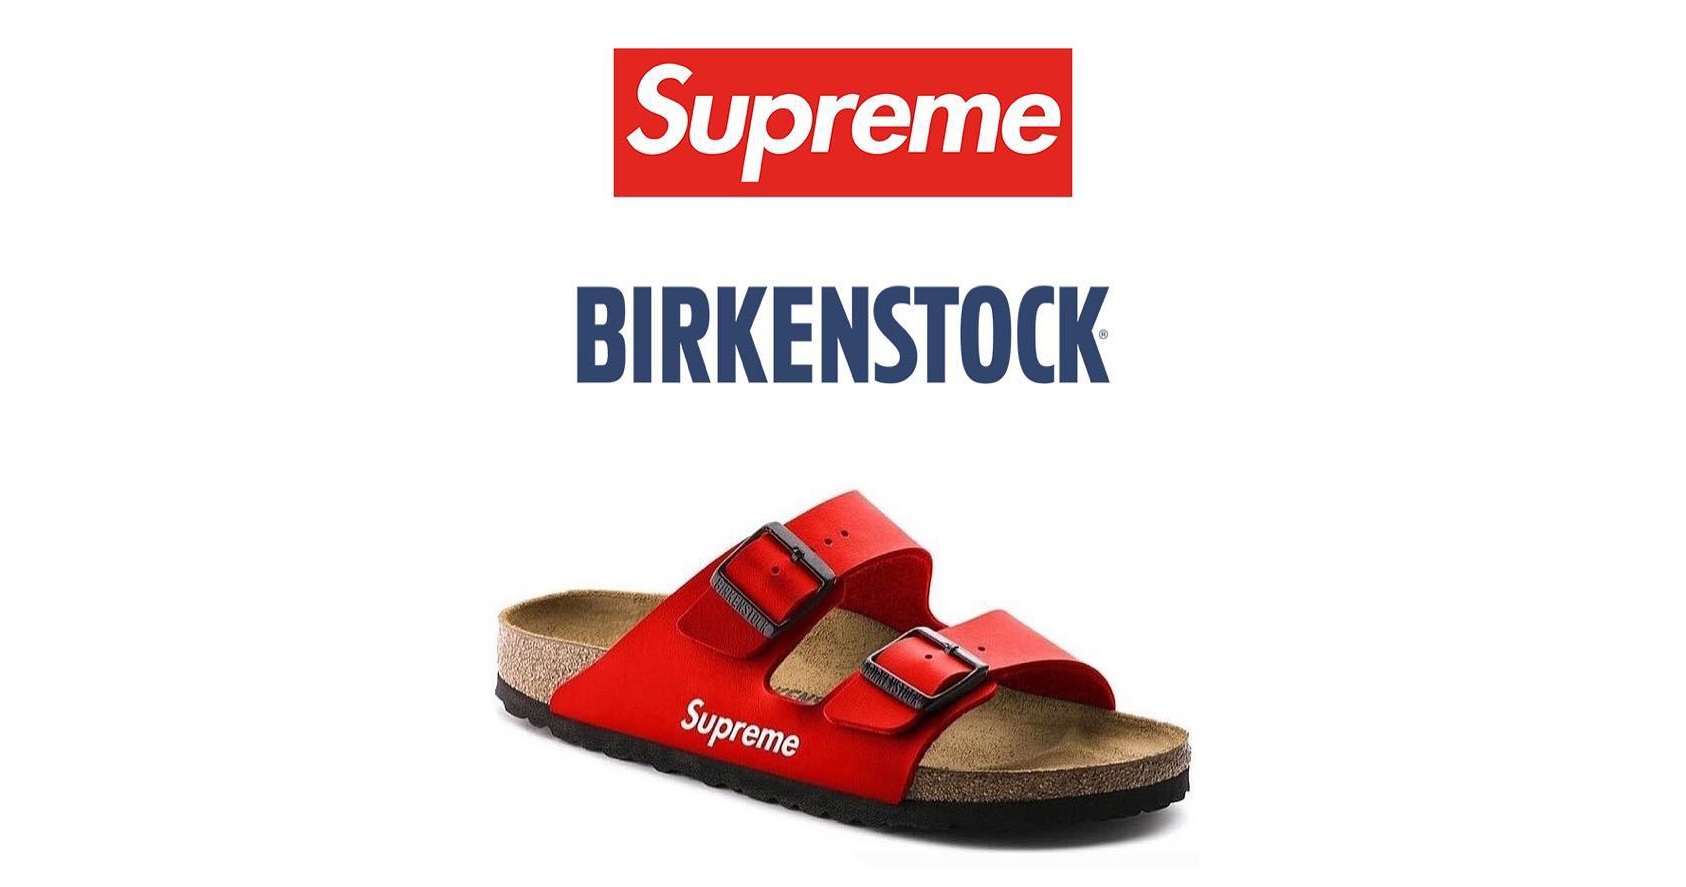 """Birkenstock Turned Down a Supreme Collaboration, Likening it to """"Prostitution"""""""